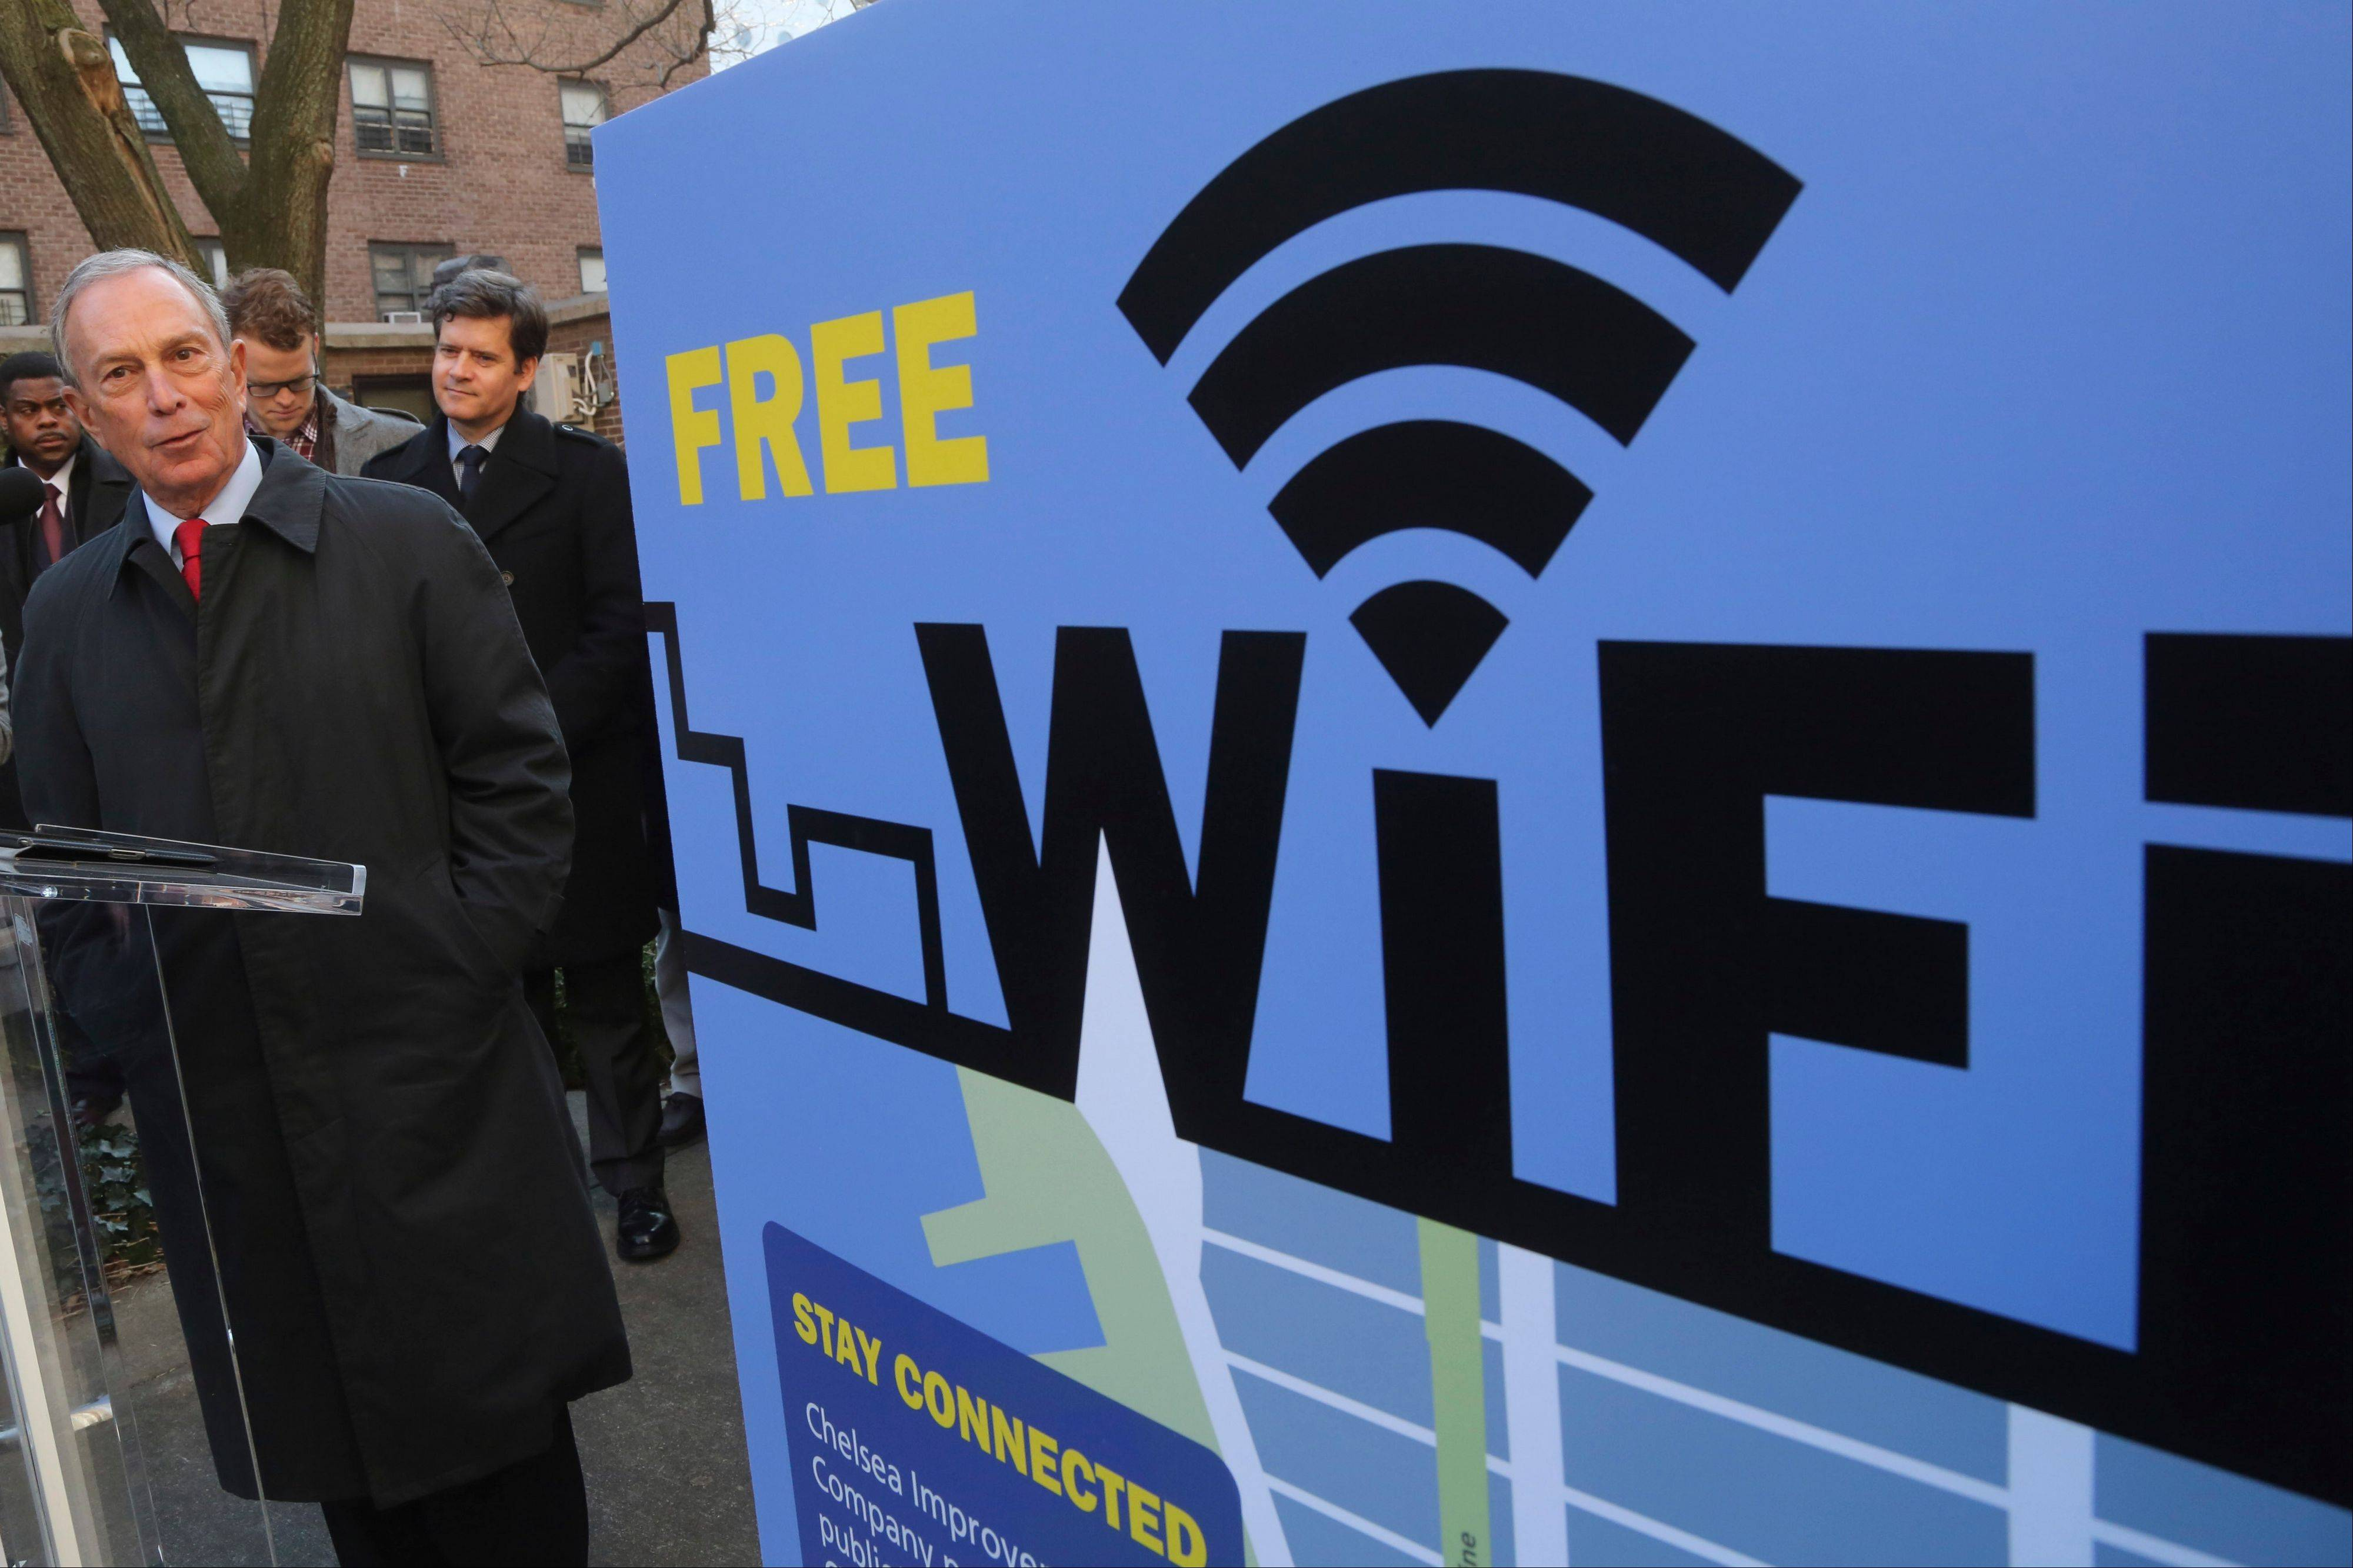 New York City Mayor Michael Bloomberg speaks Tuesday during a news conference in New York. Google and The Chelsea Improvement Company say they�ll provide free public Wi-Fi in Manhattan�s southwest Chelsea neighborhood.